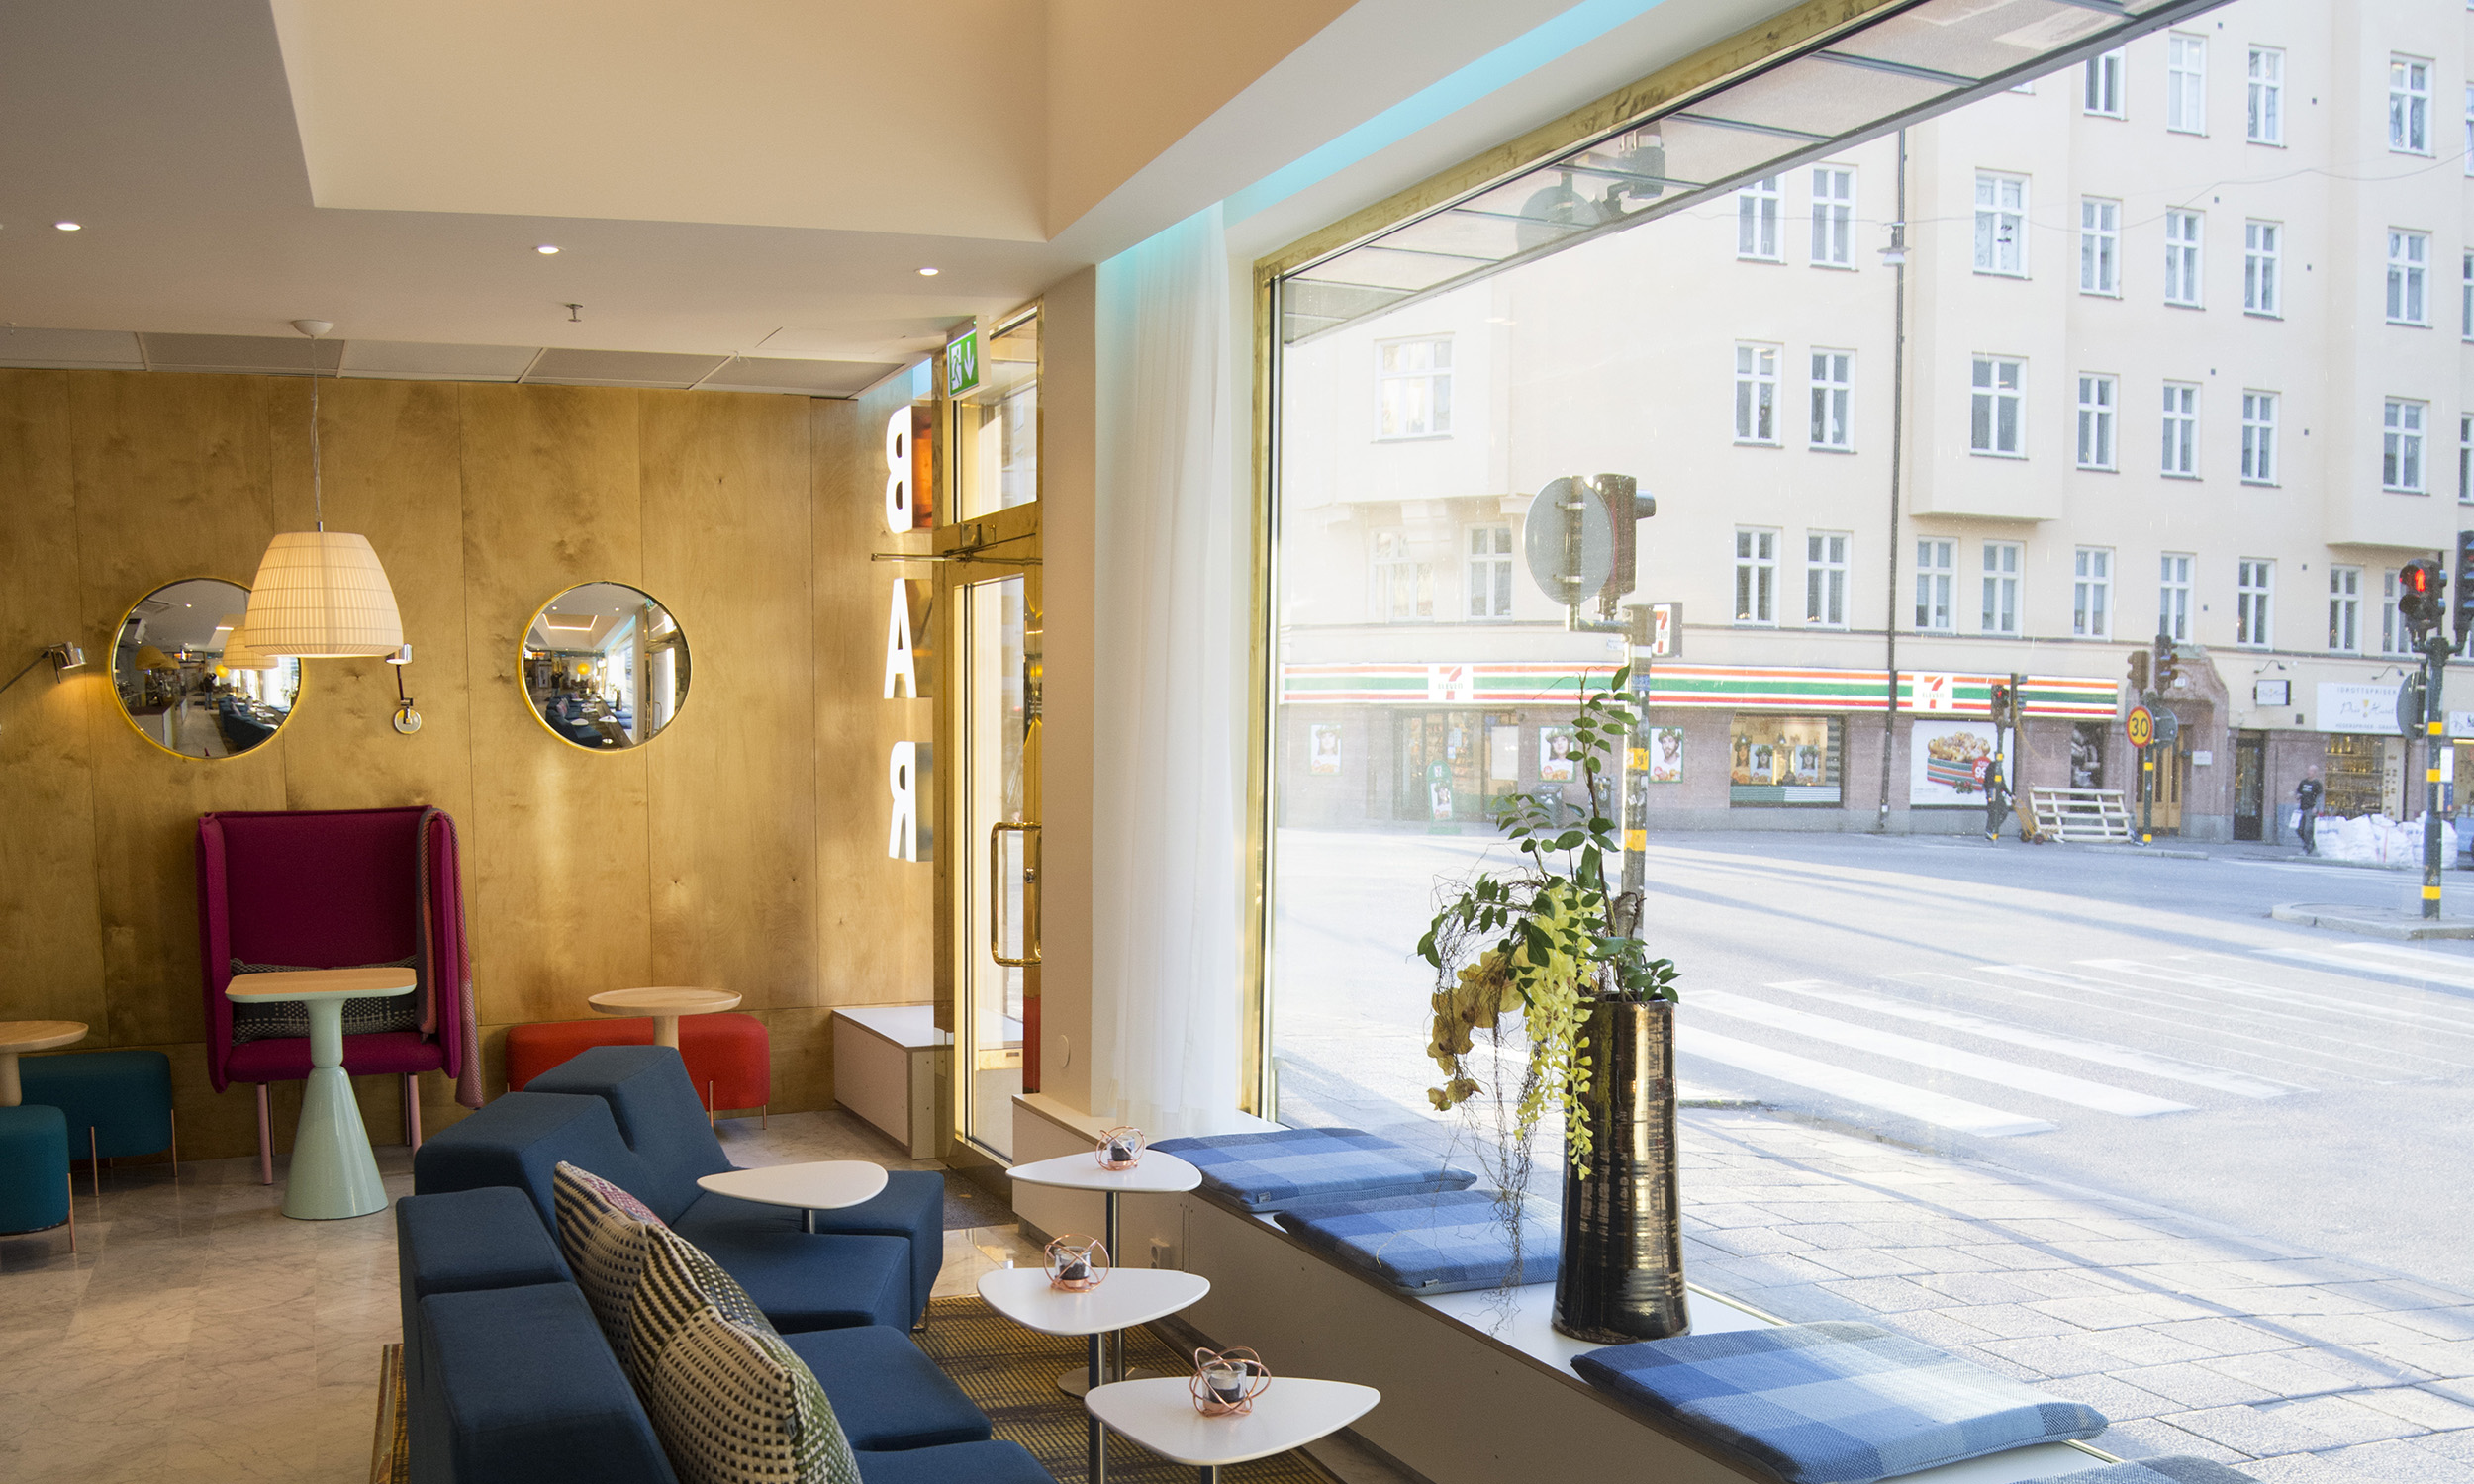 Stockholm_Kungsholmen_First_Hotel_Fridhe